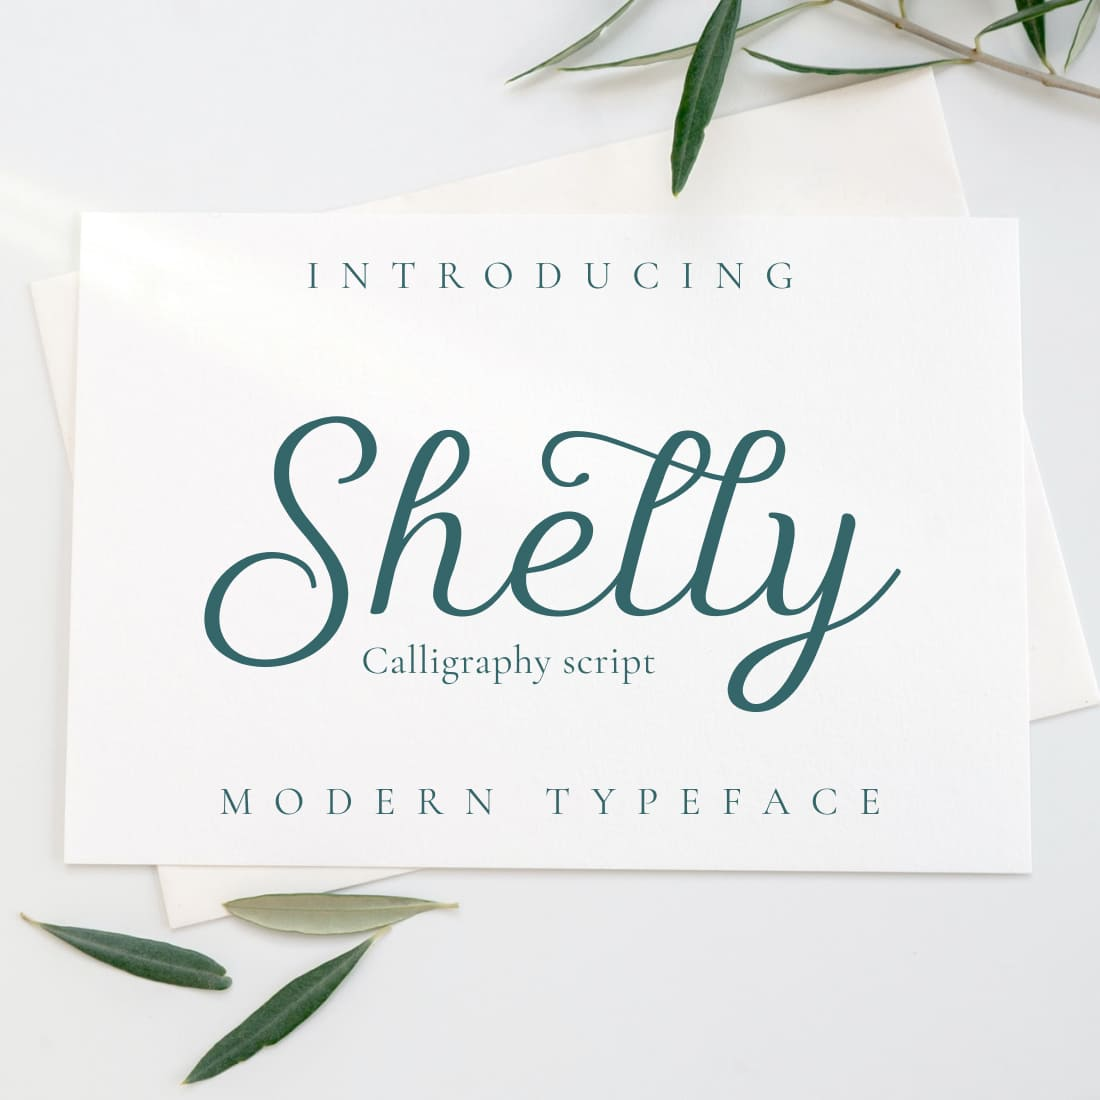 Shelly free script font Cover Collage Image by MasterBundles.